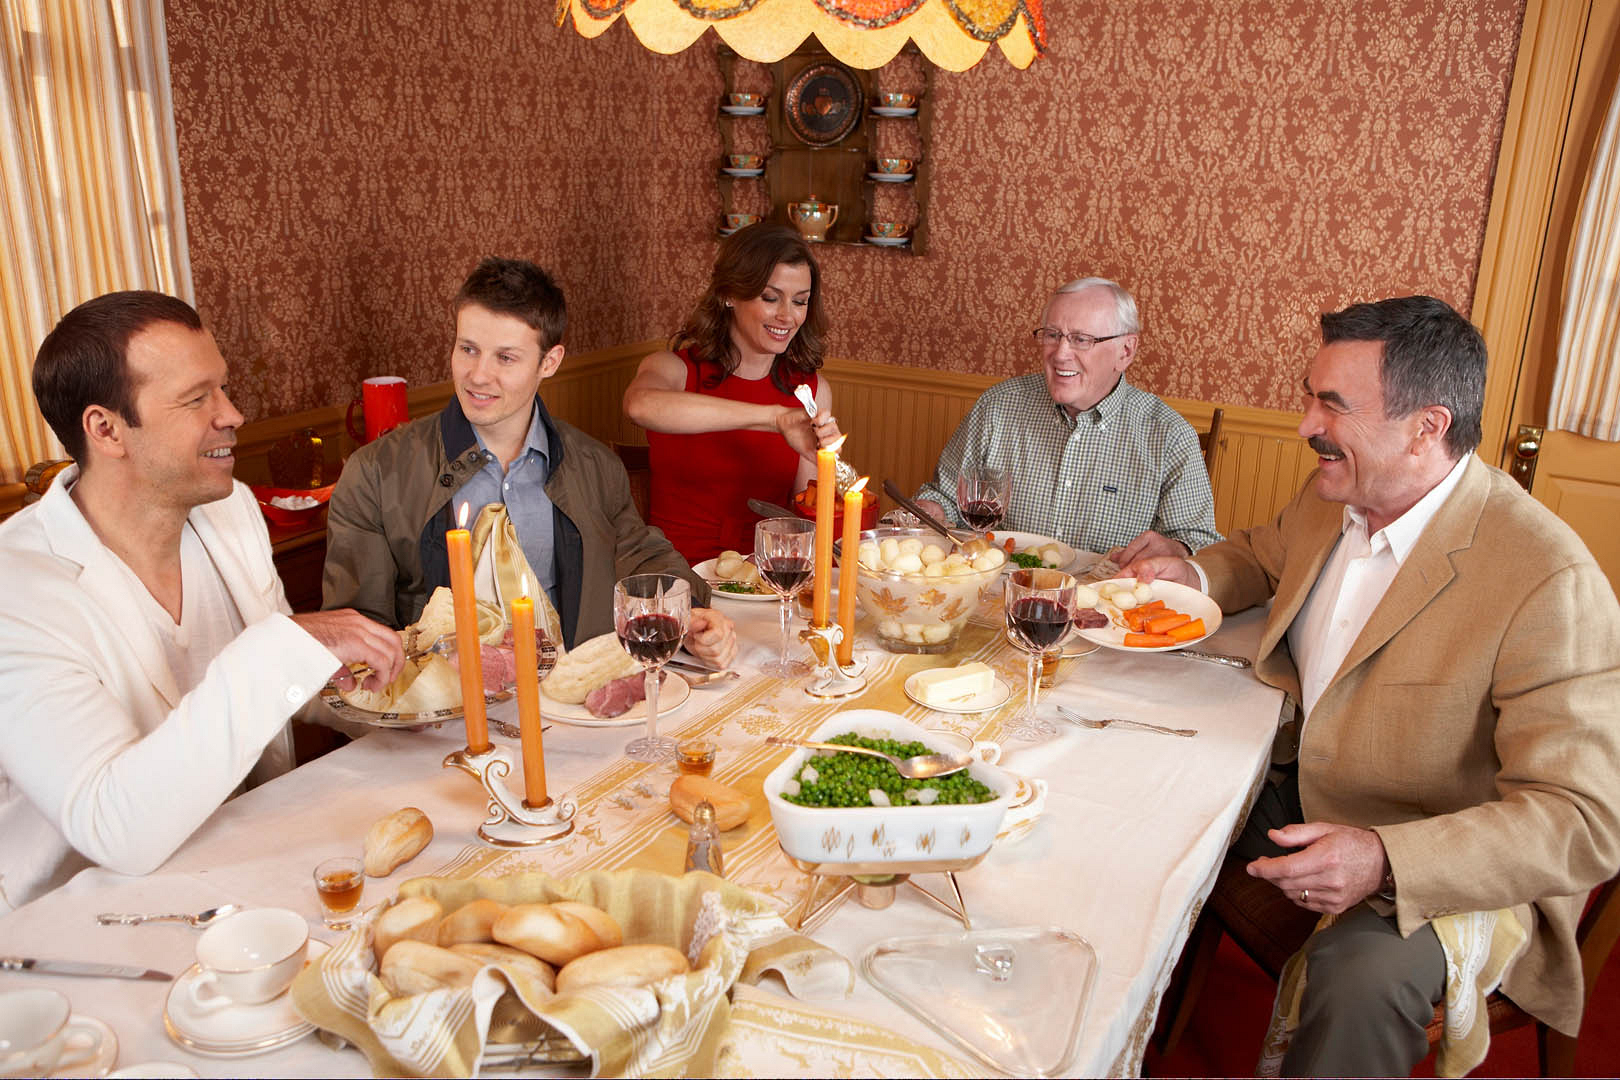 The endearing Blue Bloods clan, especially their traditional Reagan family dinners